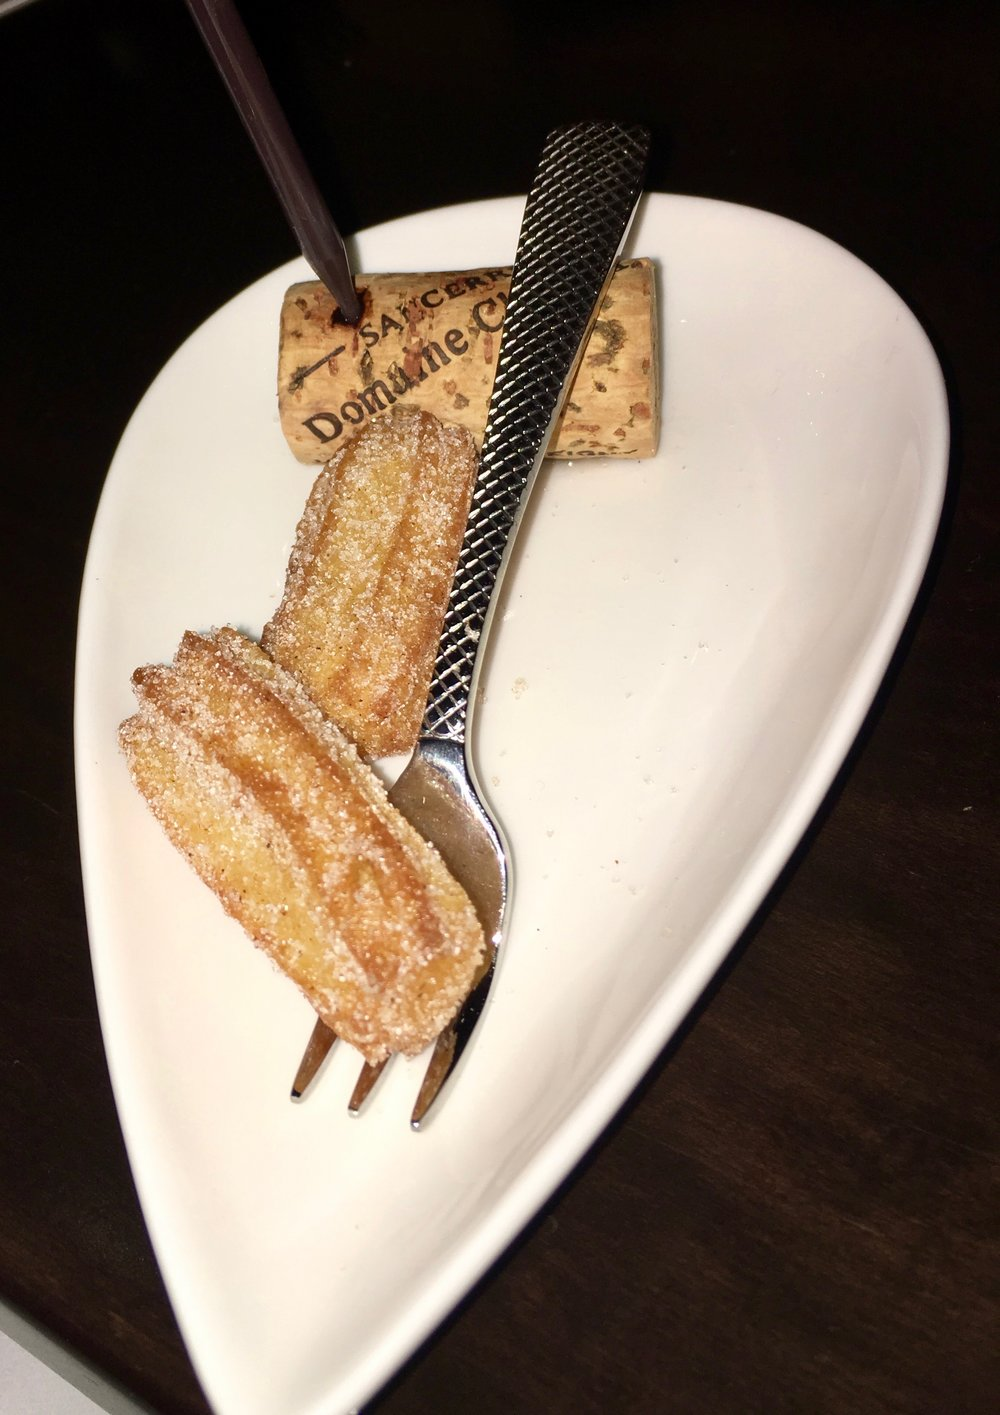 Another play on California Disneyland food: churro with Mexican chocolate sauce served squeeze-it-yourself style and planted in a cork